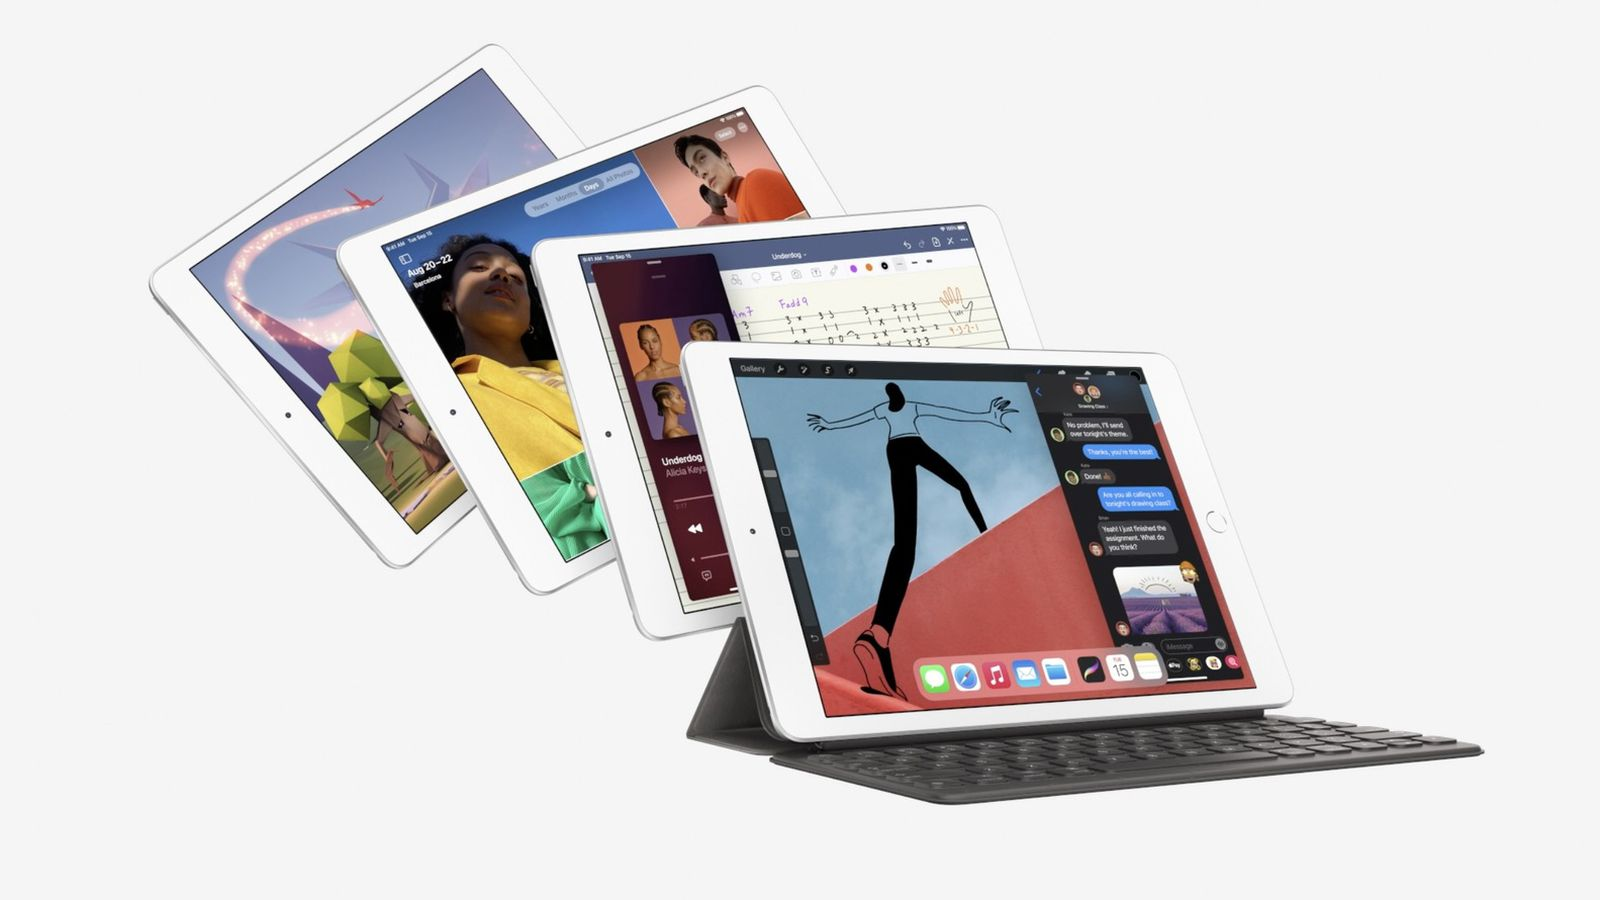 The best iPad: Which iPad model should you buy?